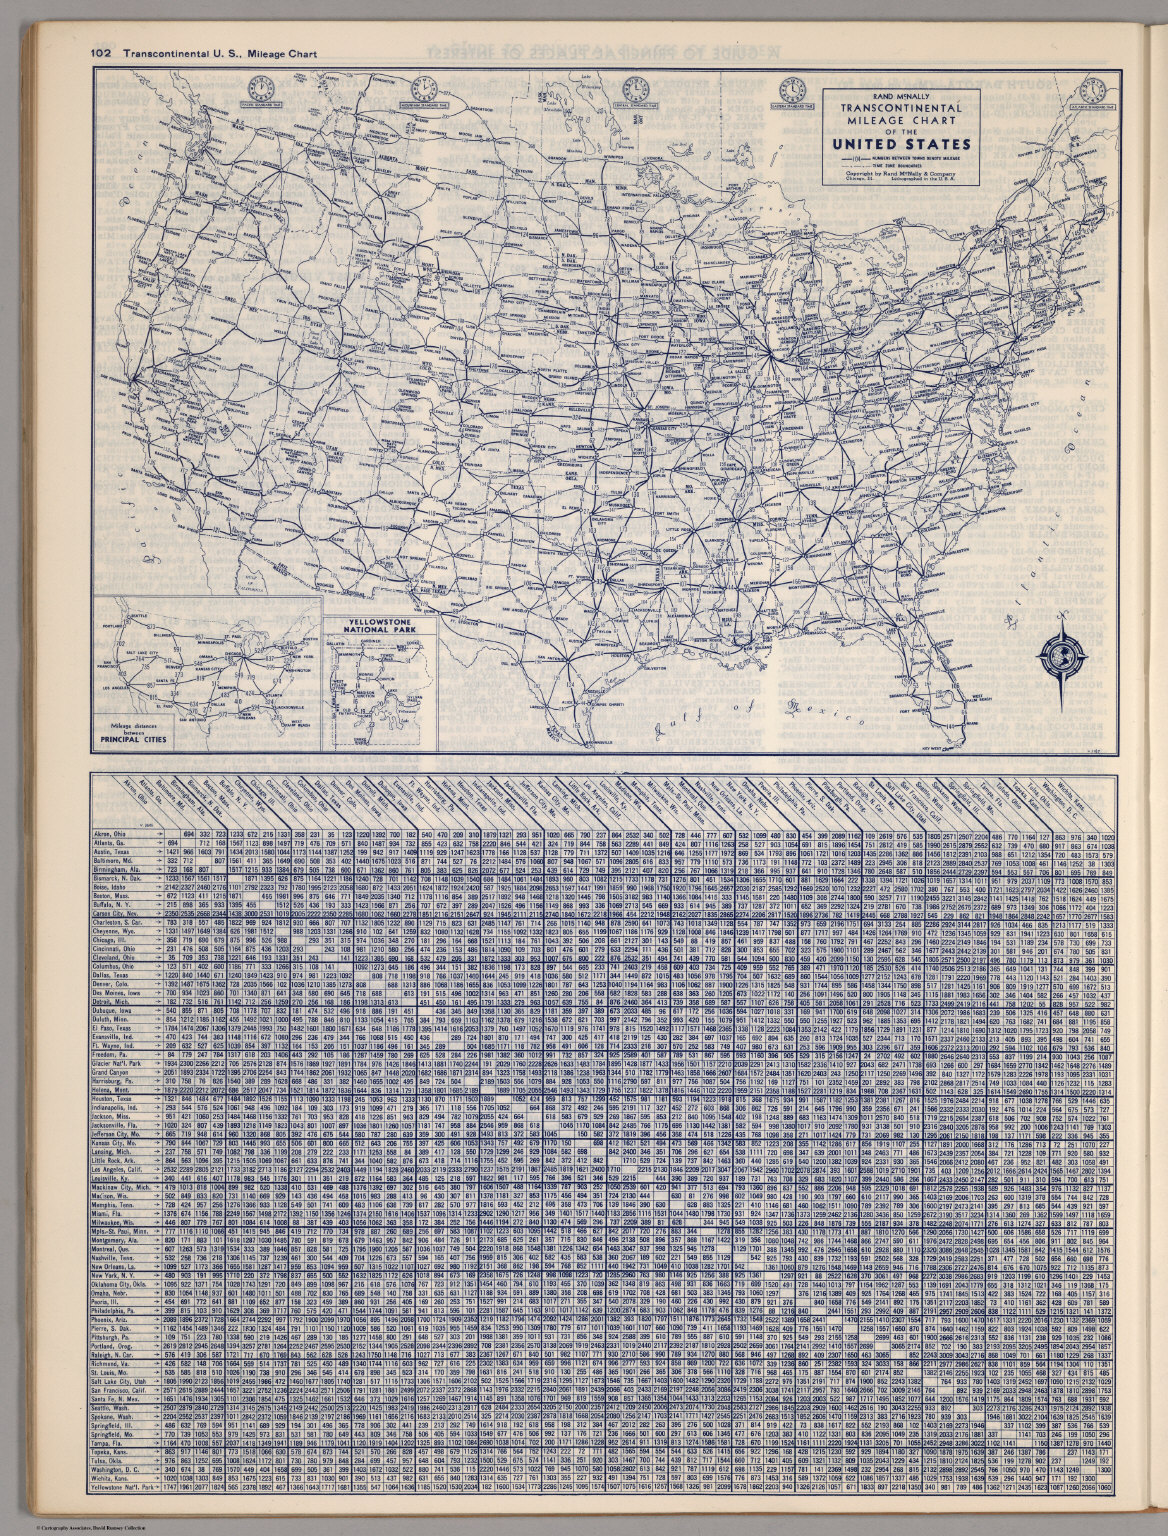 Transcontinental Mileage Chart of the United States - David Rumsey ...